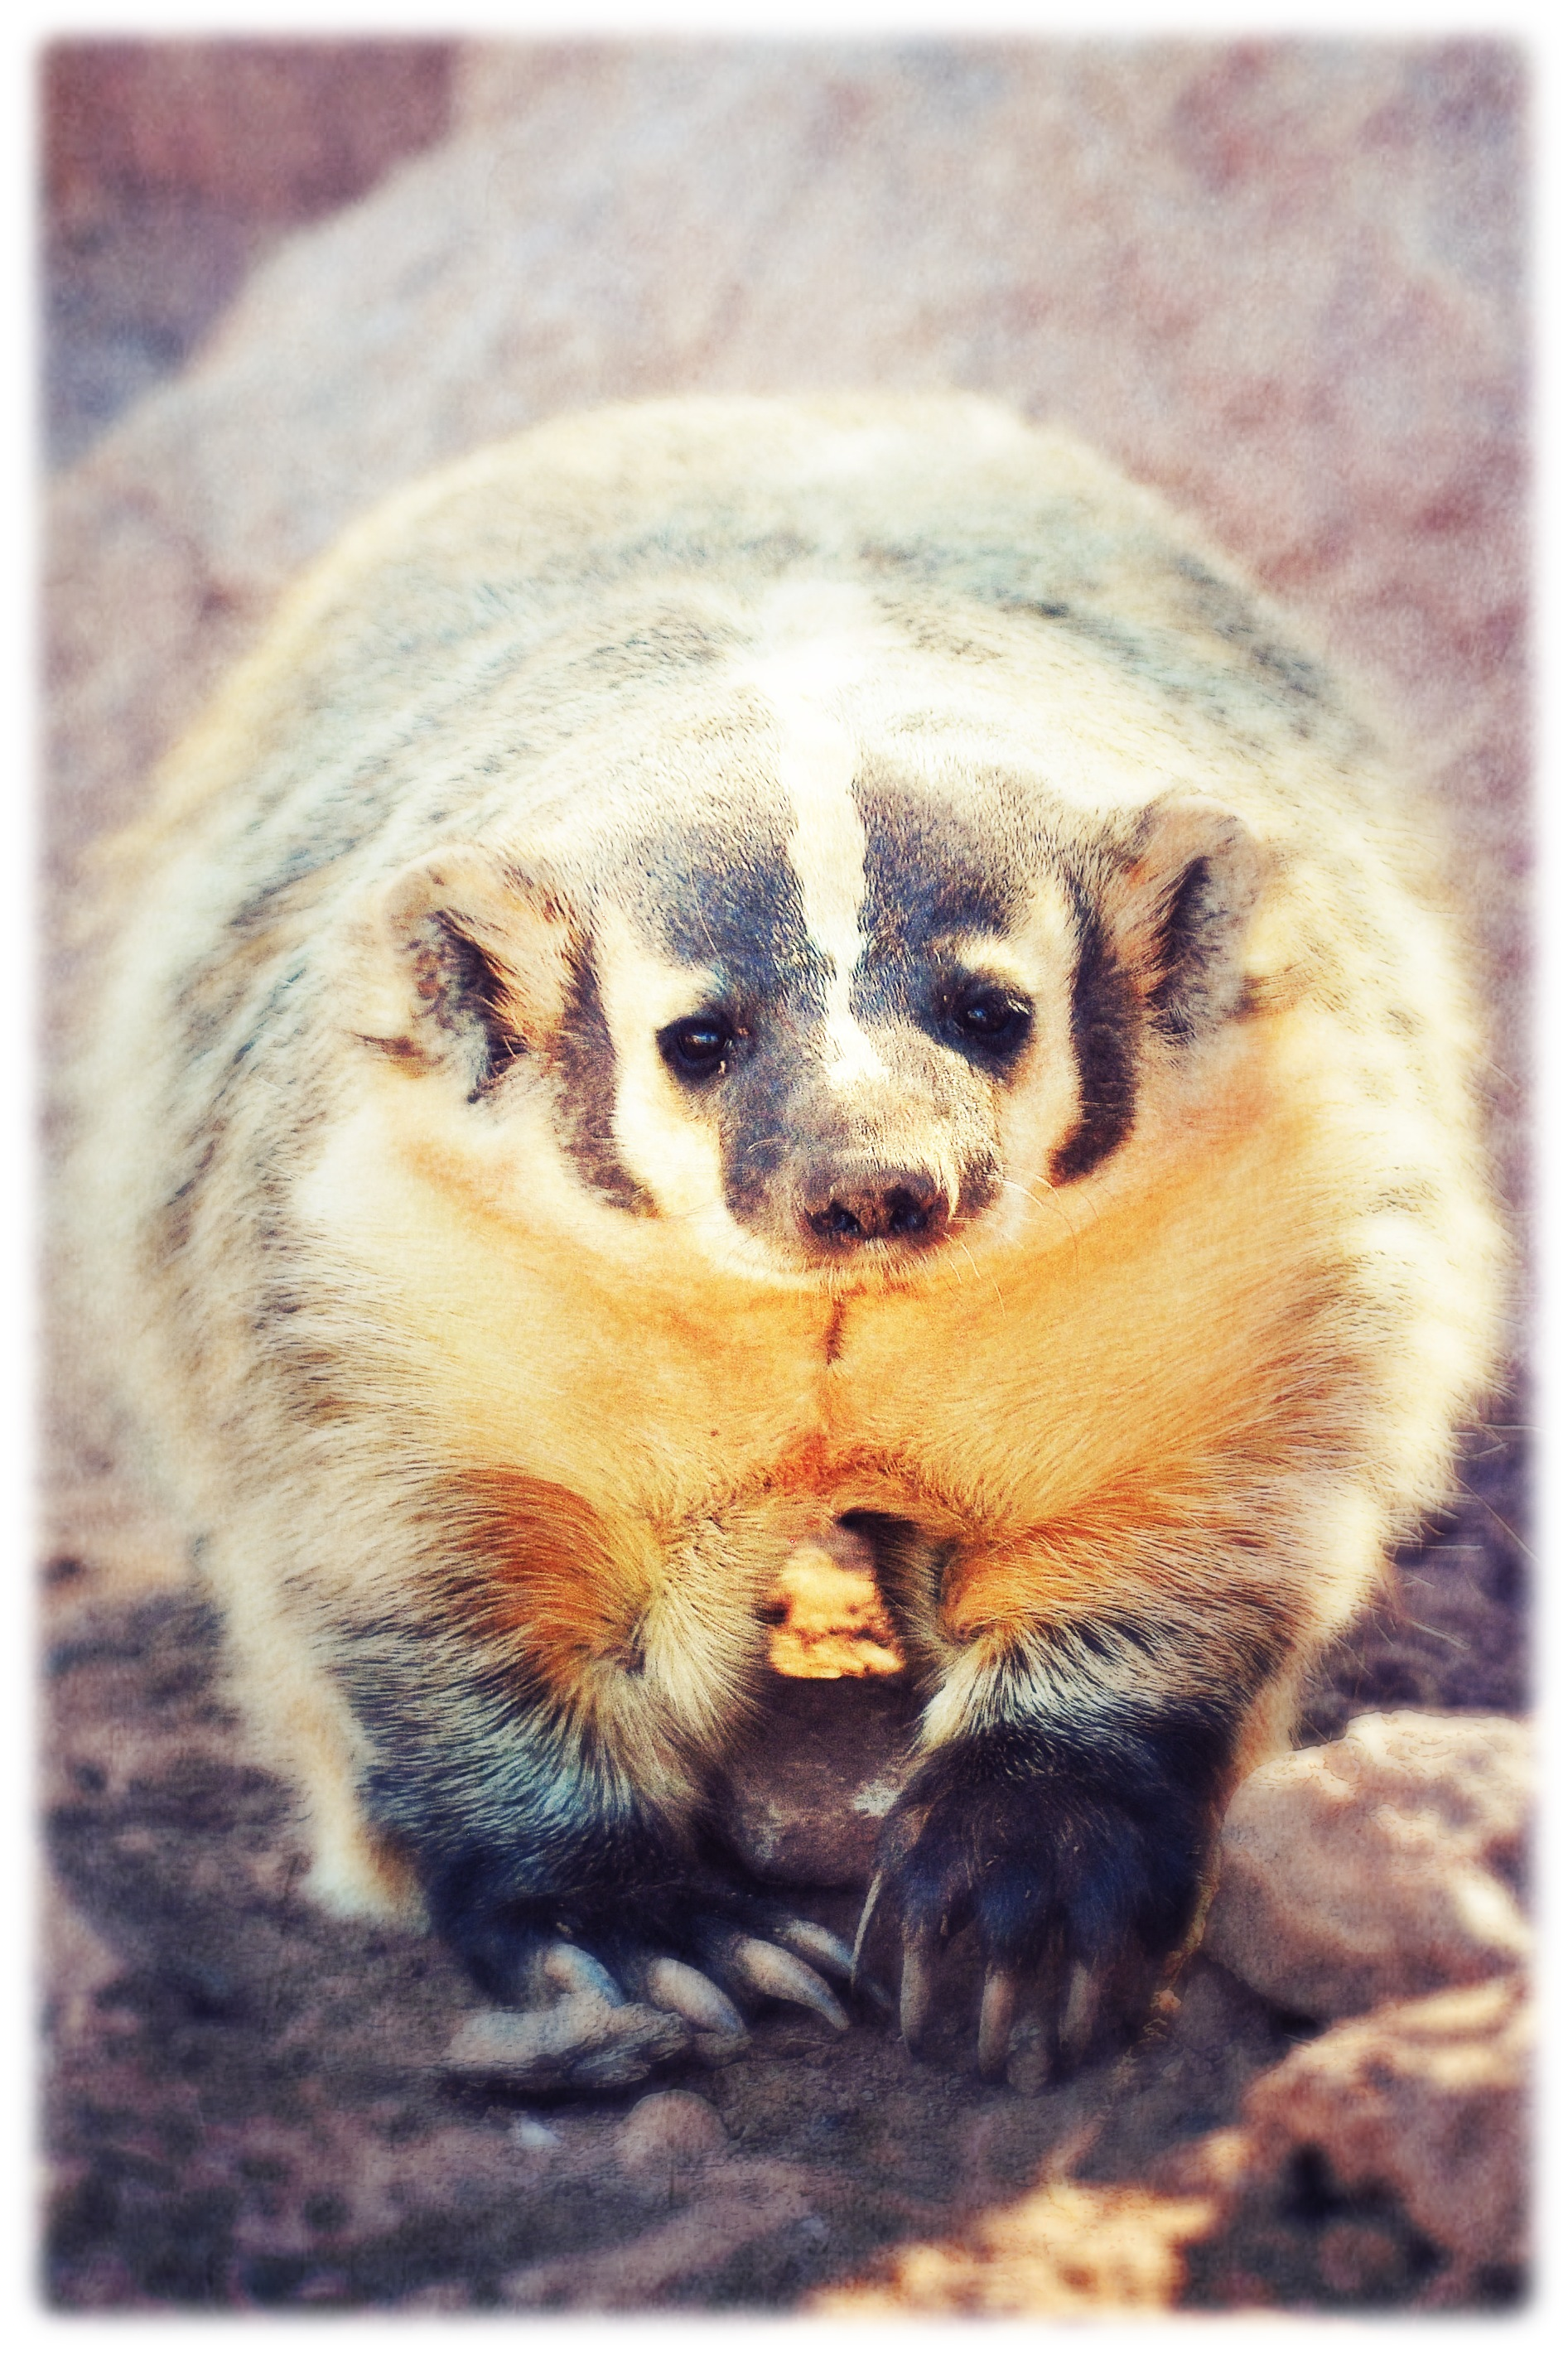 Badger, Black Hills, SD